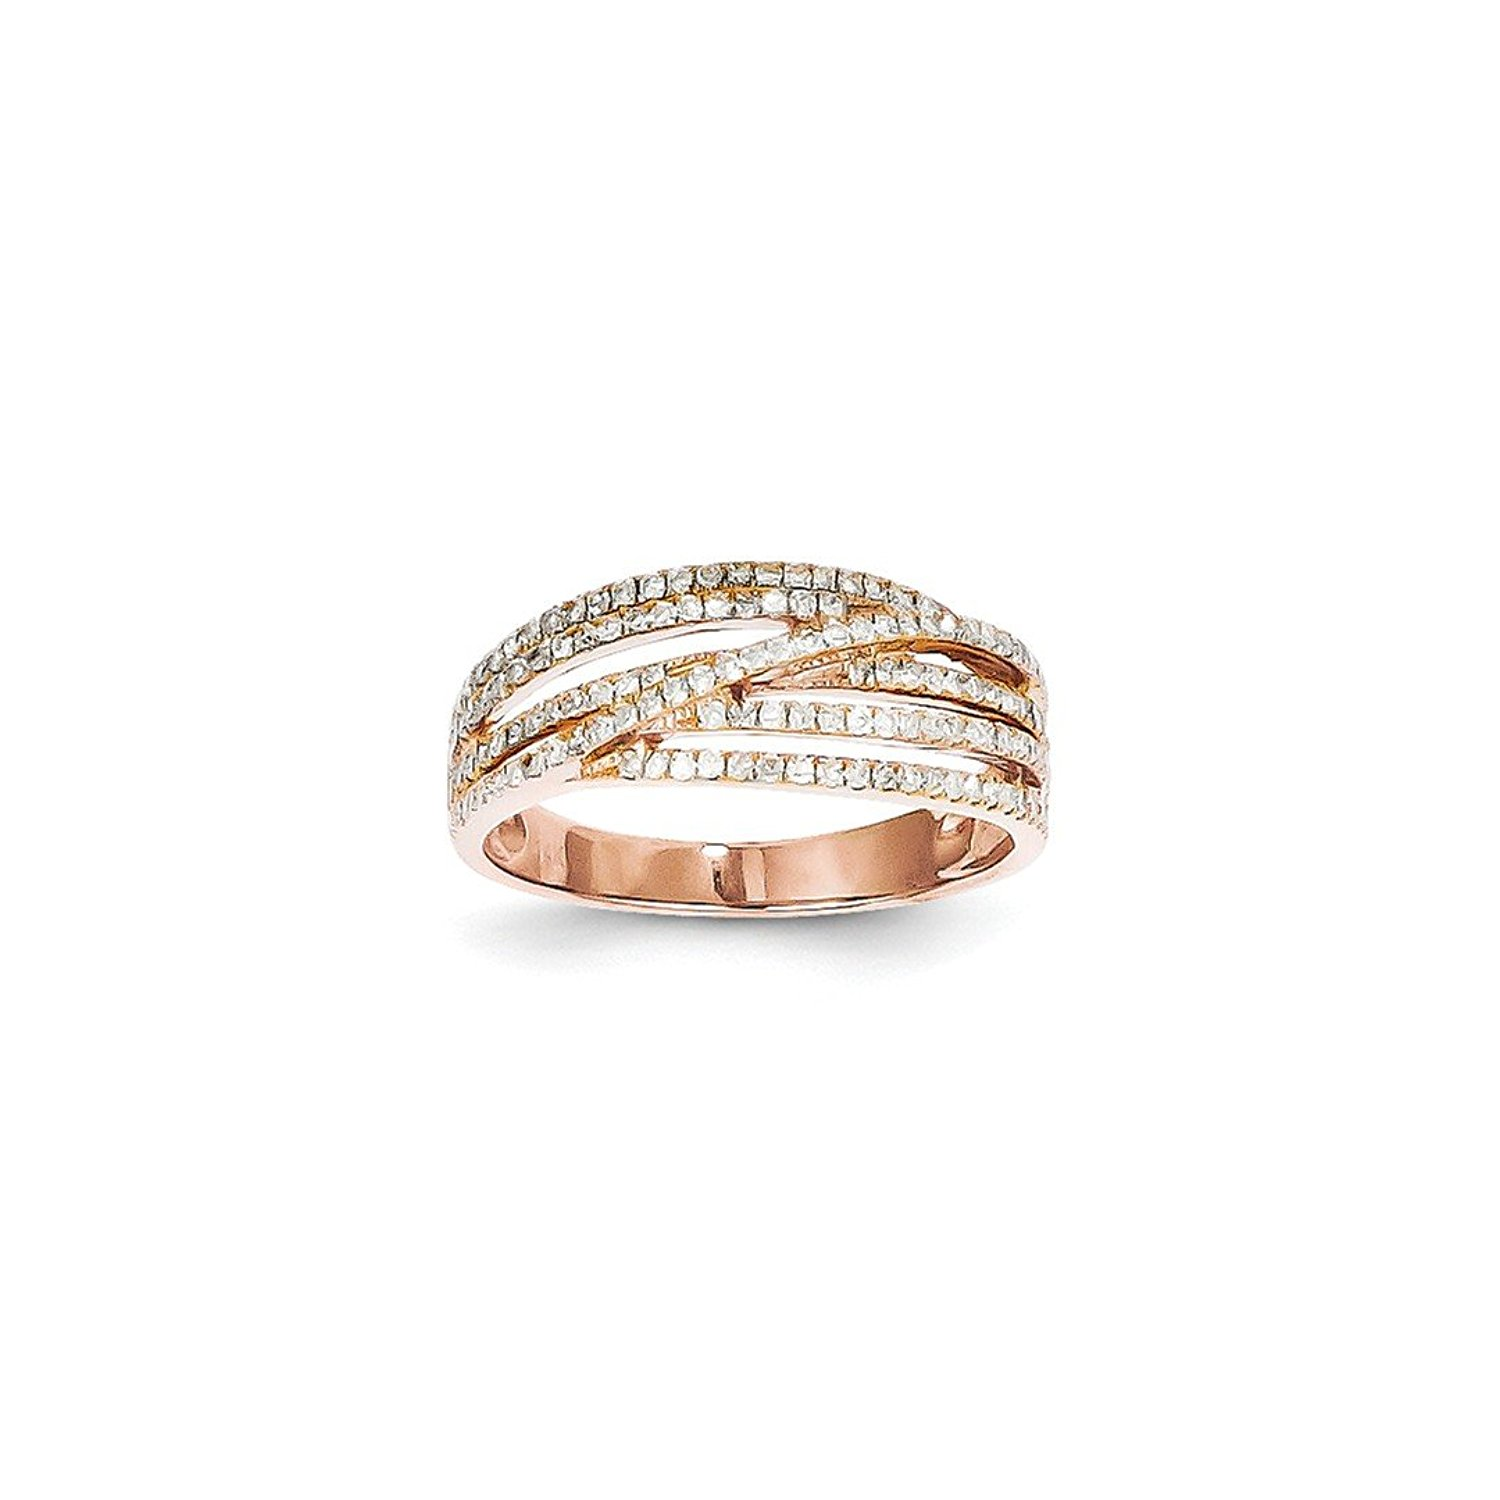 ICE CARATS 14kt Rose Gold Diamond Band Ring Stone Fine Jewelry Ideal Gifts For Women Gift Set From Heart